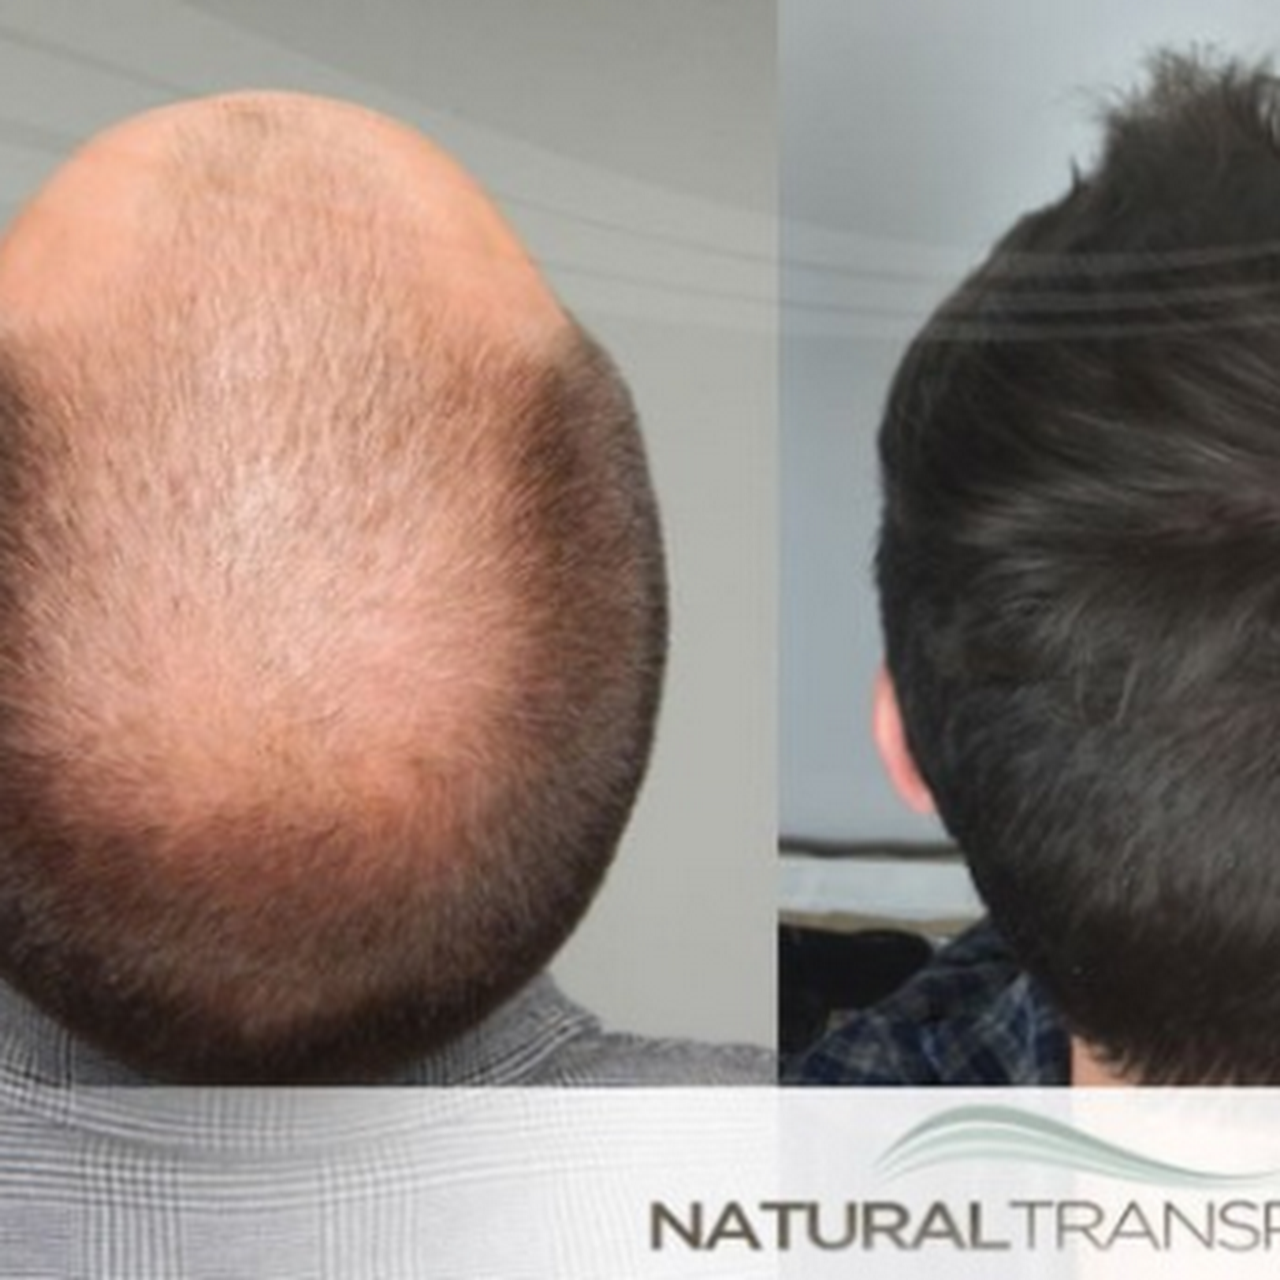 Natural Transplants Hair Restoration Clinic Hair Replacement